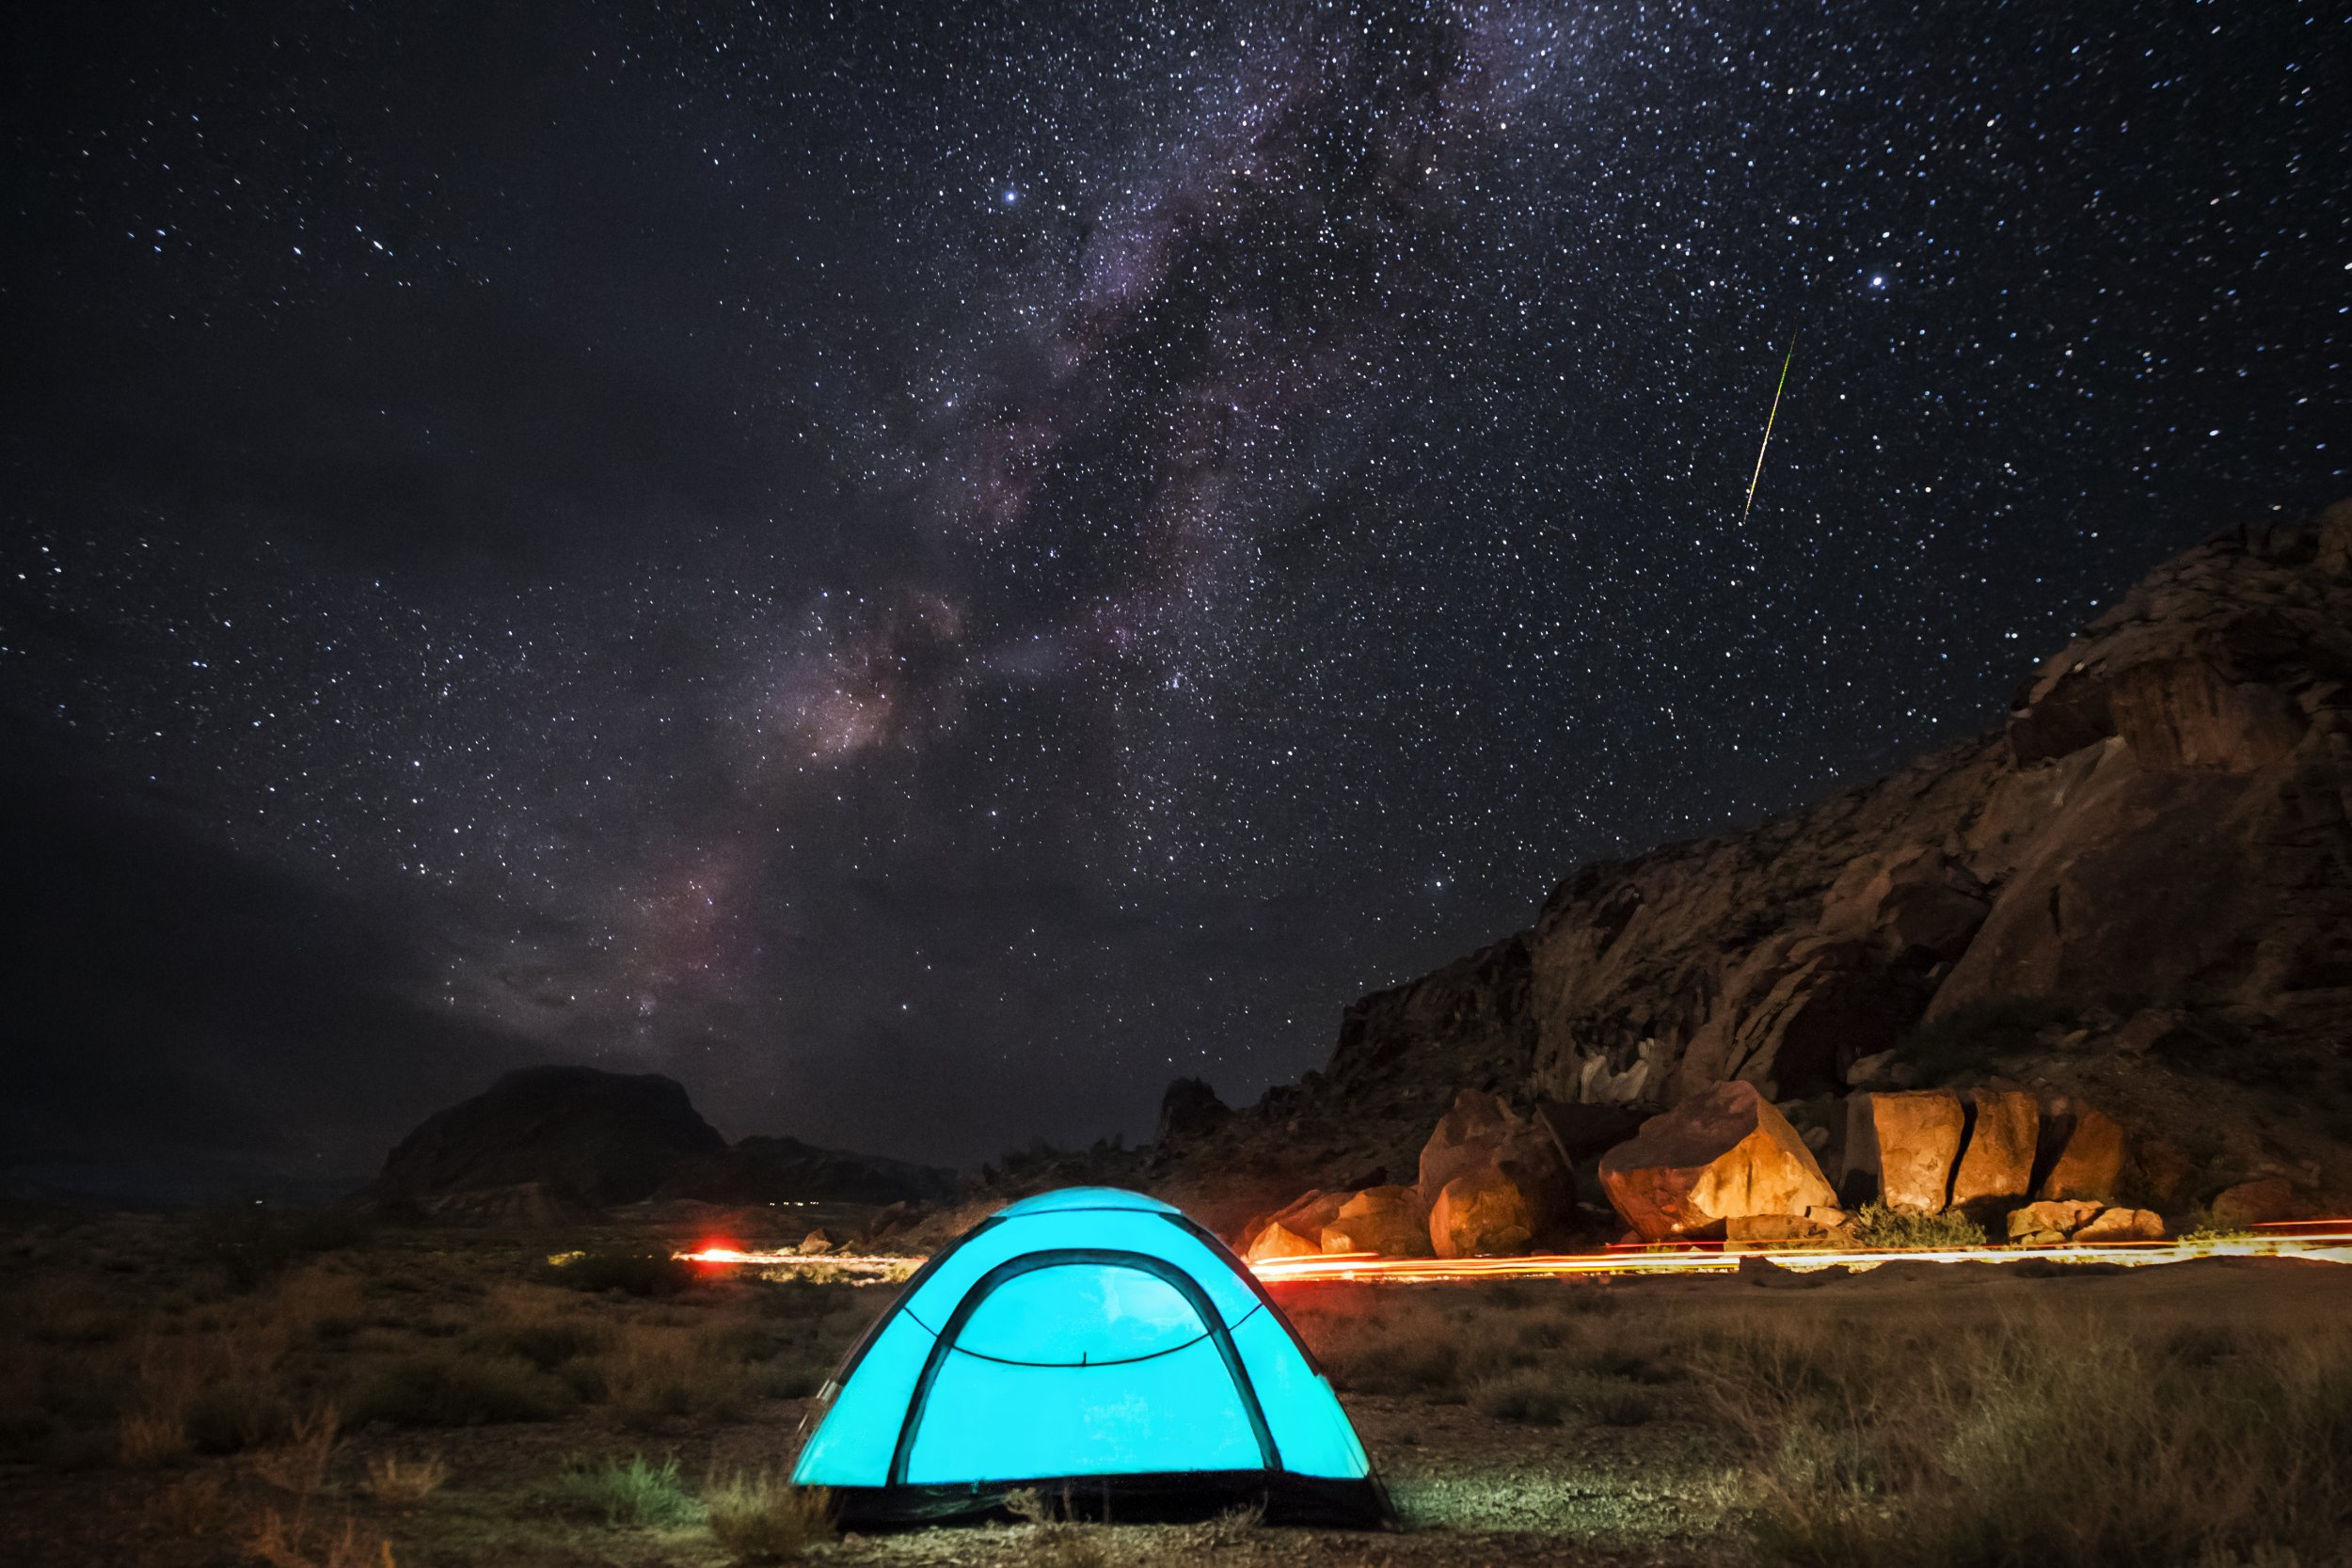 Photographers catch Perseid meteor shower in all its beauty